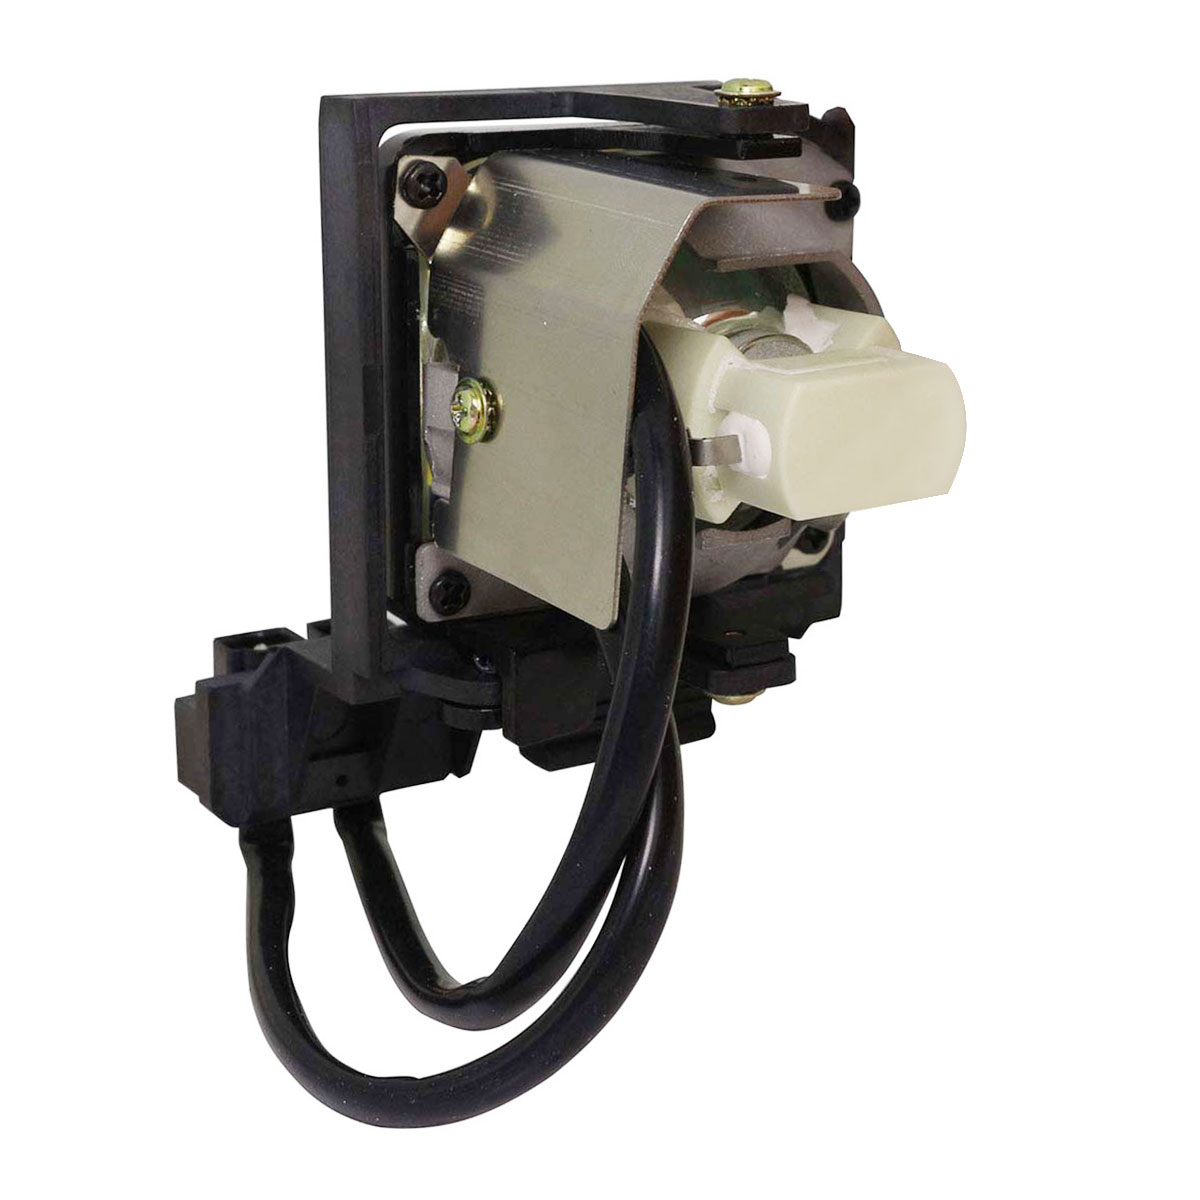 Lutema Economy Bulb for 3M Digital Media System 765 Projector (Lamp with Housing) - image 2 de 5